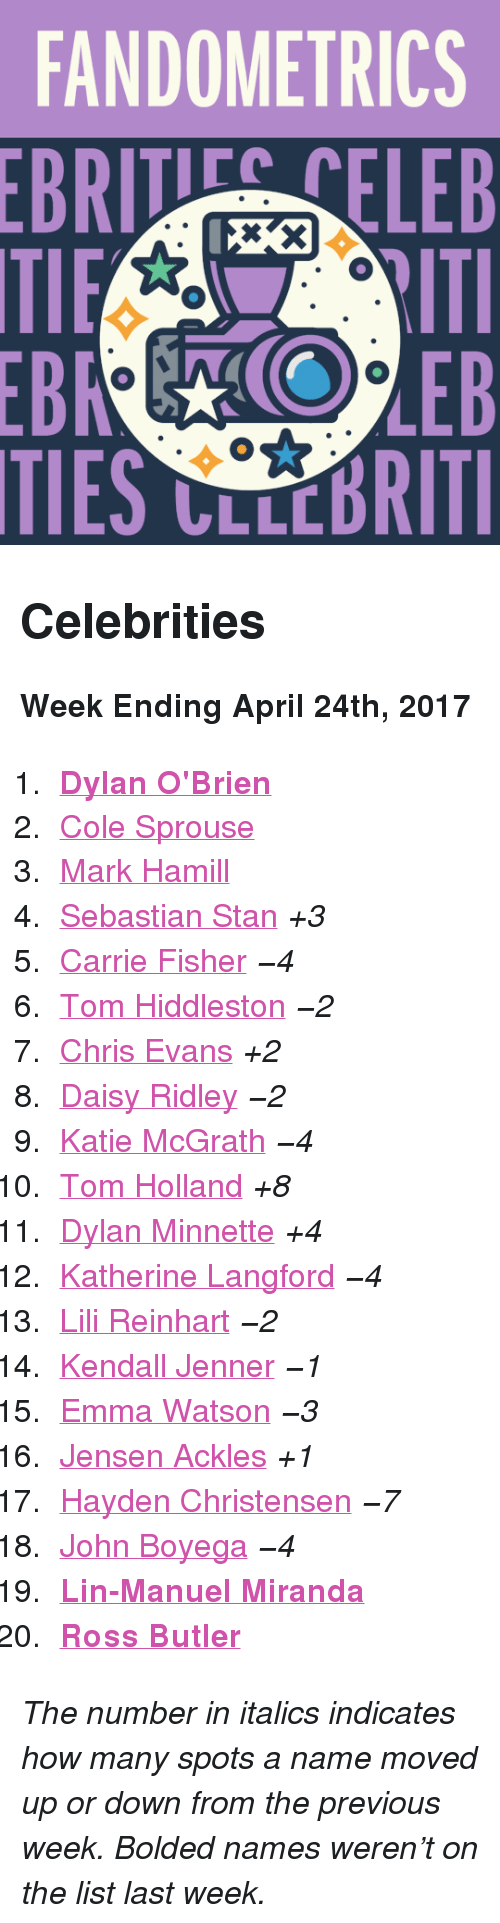 """Daisy Ridley: FANDOMETRICS  BRTELEB  TIES CLLCBRITI <h2>Celebrities</h2><p><b>Week Ending April 24th, 2017</b></p><ol><li><a href=""""http://www.tumblr.com/search/dylan%20o'brien""""><b>Dylan O'Brien</b></a></li>  <li><a href=""""http://www.tumblr.com/search/cole%20sprouse"""">Cole Sprouse</a></li>  <li><a href=""""http://www.tumblr.com/search/mark%20hamill"""">Mark Hamill</a></li>  <li><a href=""""http://www.tumblr.com/search/sebastian%20stan"""">Sebastian Stan</a><i>+3</i></li>  <li><a href=""""http://www.tumblr.com/search/carrie%20fisher"""">Carrie Fisher</a><i>−4</i></li>  <li><a href=""""http://www.tumblr.com/search/tom%20hiddleston"""">Tom Hiddleston</a><i>−2</i></li>  <li><a href=""""http://www.tumblr.com/search/chris%20evans"""">Chris Evans</a><i>+2</i></li>  <li><a href=""""http://www.tumblr.com/search/daisy%20ridley"""">Daisy Ridley</a><i>−2</i></li>  <li><a href=""""http://www.tumblr.com/search/katie%20mcgrath"""">Katie McGrath</a><i>−4</i></li>  <li><a href=""""http://www.tumblr.com/search/tom%20holland"""">Tom Holland</a><i>+8</i></li>  <li><a href=""""http://www.tumblr.com/search/dylan%20minnette"""">Dylan Minnette</a><i>+4</i></li>  <li><a href=""""http://www.tumblr.com/search/katherine%20langford"""">Katherine Langford</a><i>−4</i></li>  <li><a href=""""http://www.tumblr.com/search/lili%20reinhart"""">Lili Reinhart</a><i>−2</i></li>  <li><a href=""""http://www.tumblr.com/search/kendall%20jenner"""">Kendall Jenner</a><i>−1</i></li>  <li><a href=""""http://www.tumblr.com/search/emma%20watson"""">Emma Watson</a><i>−3</i></li>  <li><a href=""""http://www.tumblr.com/search/jensen%20ackles"""">Jensen Ackles</a><i>+1</i></li>  <li><a href=""""http://www.tumblr.com/search/hayden%20christensen"""">Hayden Christensen</a><i>−7</i></li>  <li><a href=""""http://www.tumblr.com/search/john%20boyega"""">John Boyega</a><i>−4</i></li>  <li><a href=""""http://www.tumblr.com/search/lin%20manuel%20miranda""""><b>Lin-Manuel Miranda</b></a></li>  <li><a href=""""http://www.tumblr.com/search/ross%20butler""""><b>Ross Butler</b></a></li></ol><p><i>The number in italics indicates how many spot"""